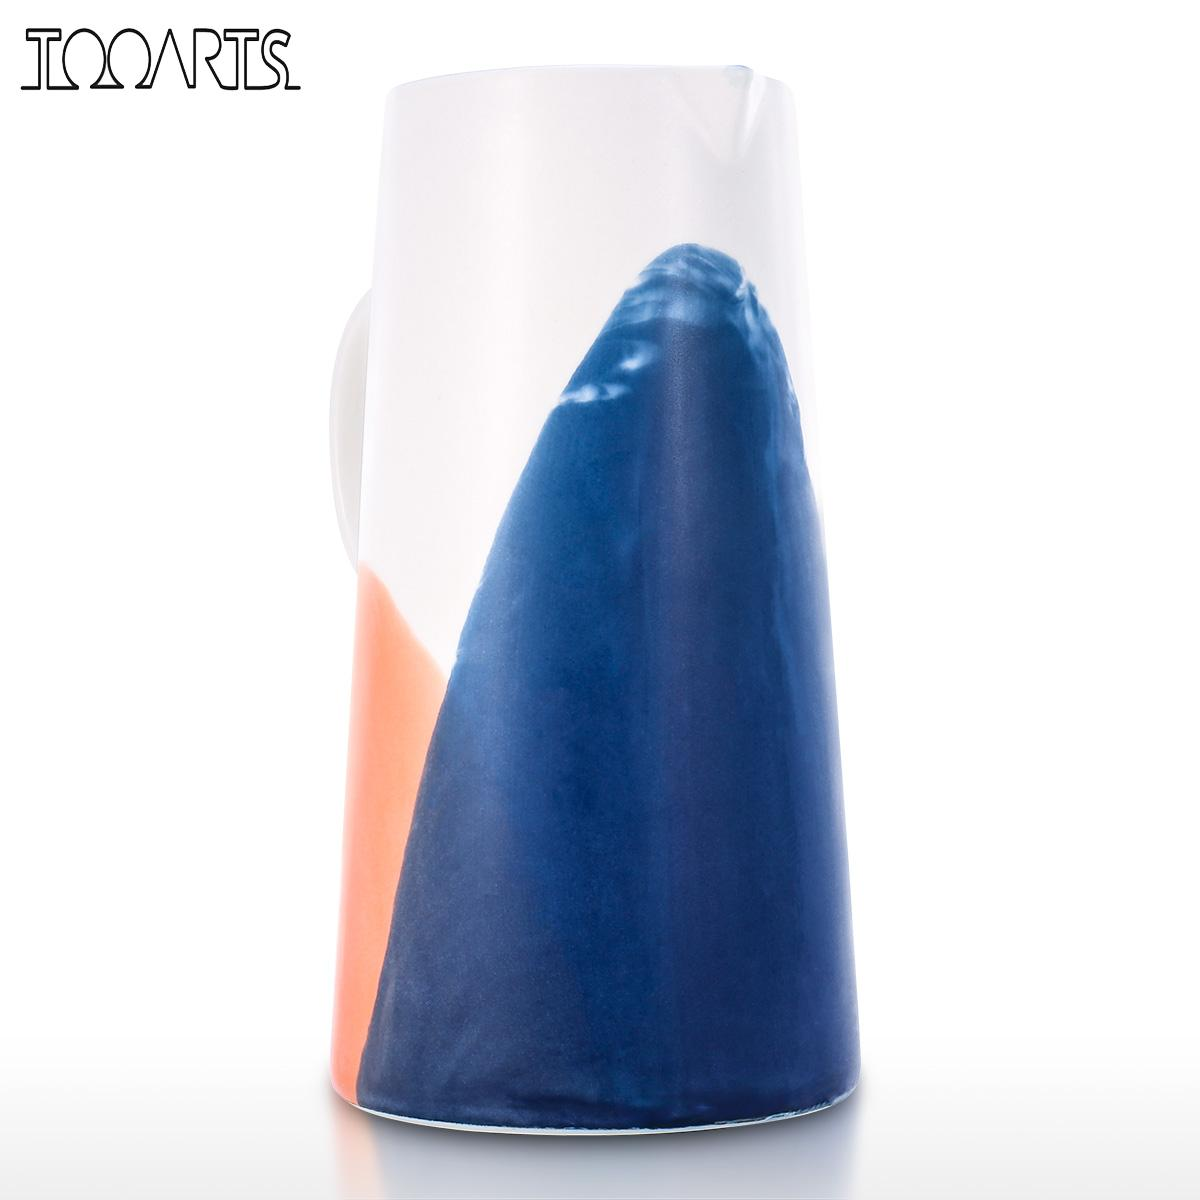 milk frother Ceramic Pitcher Decorative Use Ideal Gifts for Home Weddings Milk Jug Pot Espresso Coffee Creamer Pourer